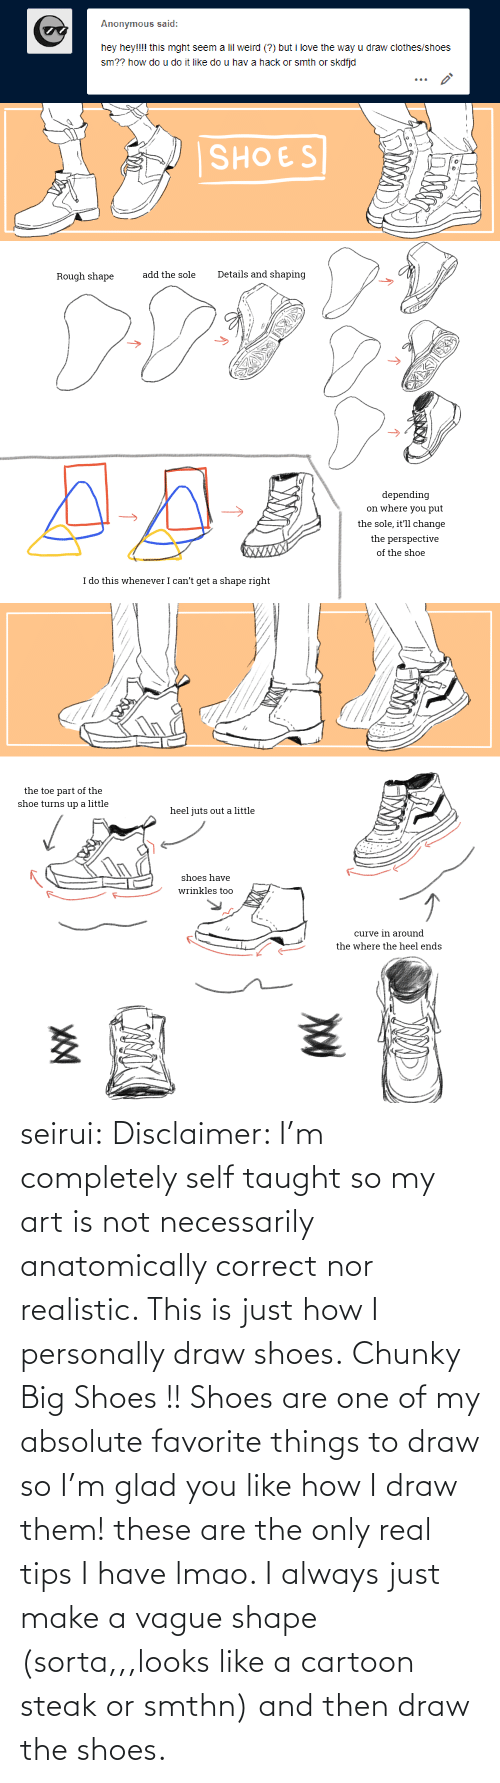 Ends: Anonymous said:  hey hey!!!! this mght seem a lil weird (?) but i love the way u draw clothes/shoes  sm?? how do u do it like do u hav a hack or smth or skdfjd   SHOES  Details and shaping  add the sole  Rough shape  depending  on where you put  the sole, it'll change  the perspective  XWXXX  of the shoe  I do this whenever I can't get a shape right   the toe part of the  shoe turns up a little  heel juts out a little  shoes have  wrinkles too  curve in around  the where the heel ends seirui: Disclaimer: I'm completely self taught so my art is not necessarily anatomically correct nor realistic. This is just how I personally draw shoes. Chunky Big Shoes !! Shoes are one of my absolute favorite things to draw so I'm glad you like how I draw them! these are the only real tips I have lmao. I always just make a vague shape (sorta,,,looks like a cartoon steak or smthn) and then draw the shoes.